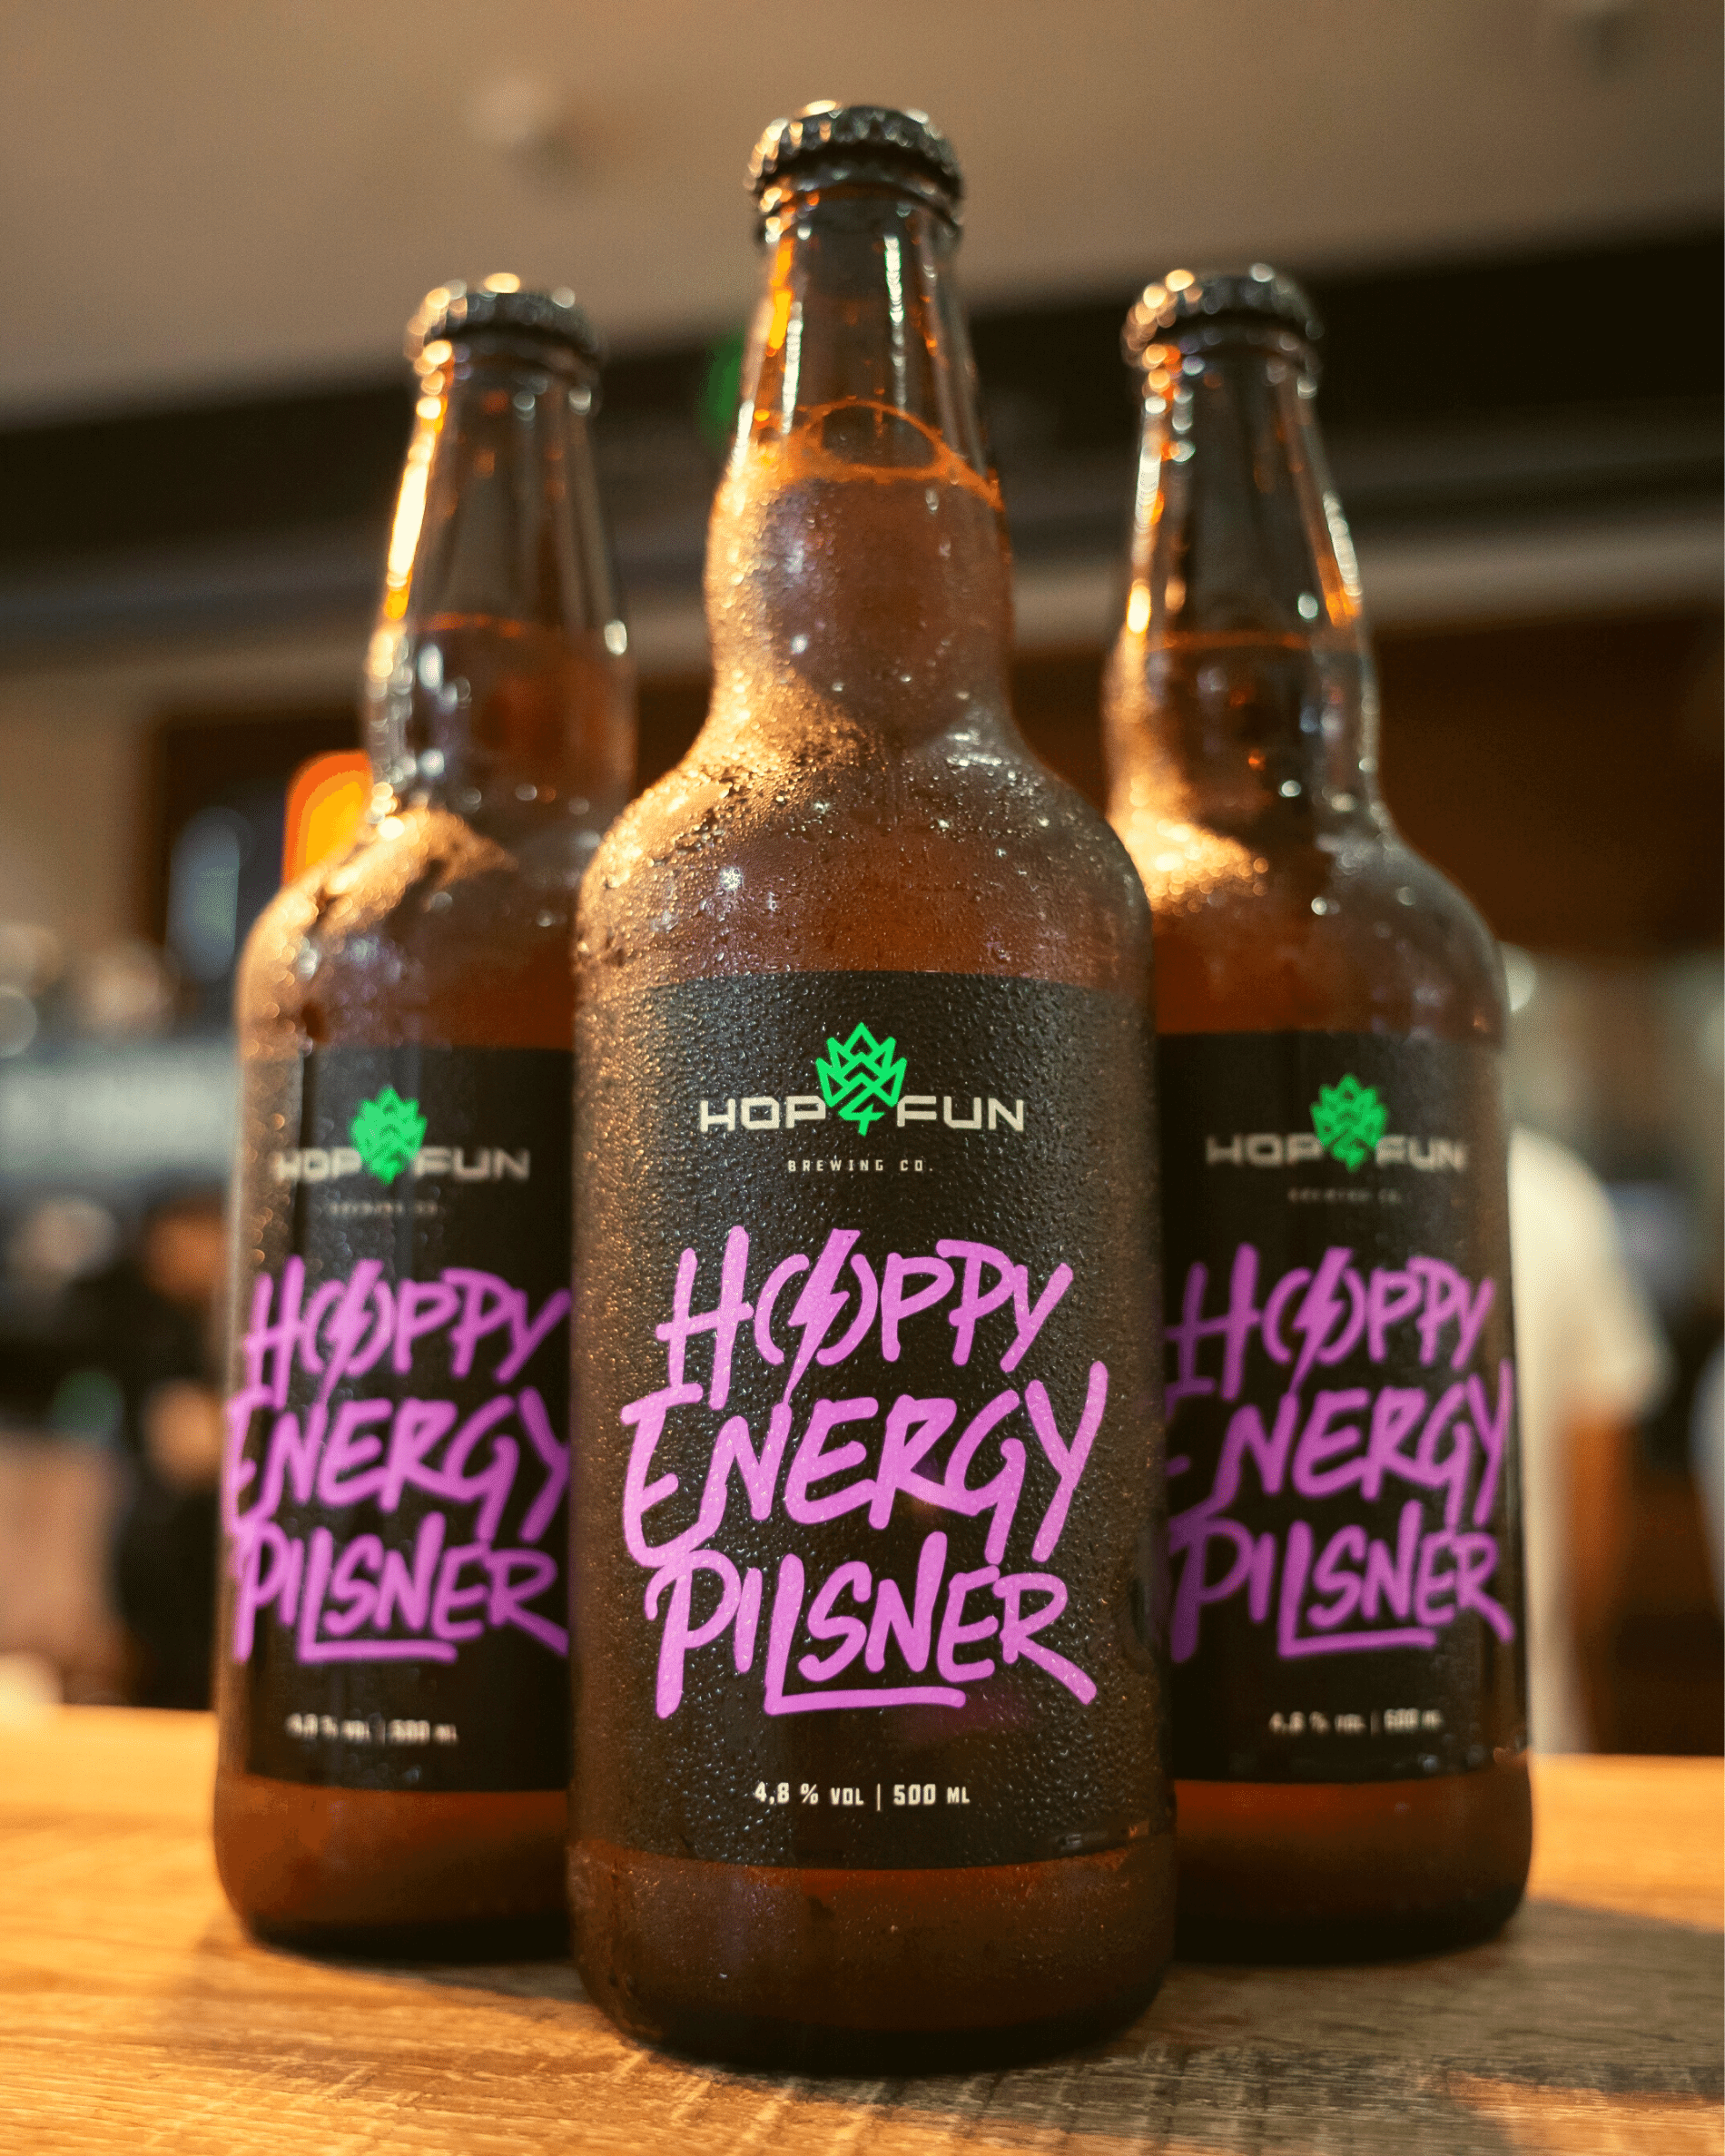 Hop For Fun cervejas especiais Hoppy Energy Pilsner